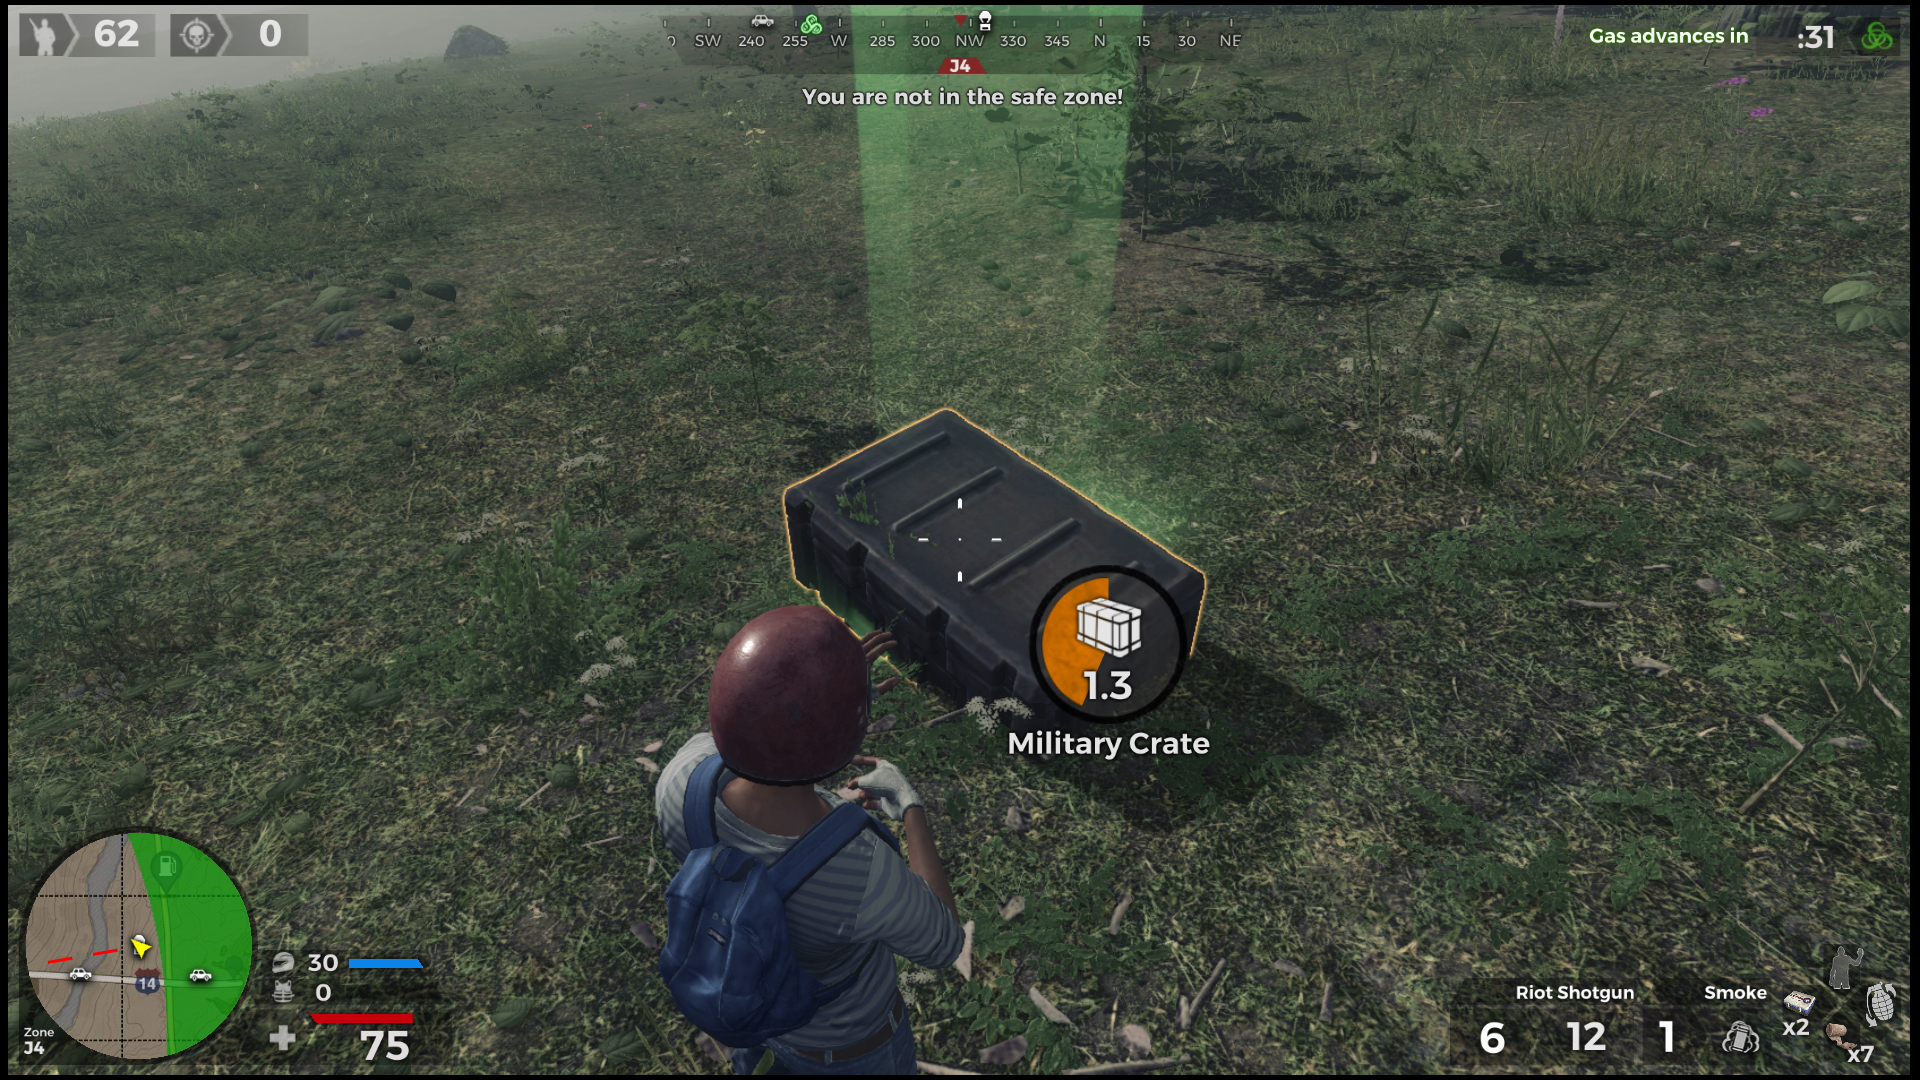 H1Z1 PS4 Tips - Full Release Date, PS Plus Bonus, Aim Acceleration